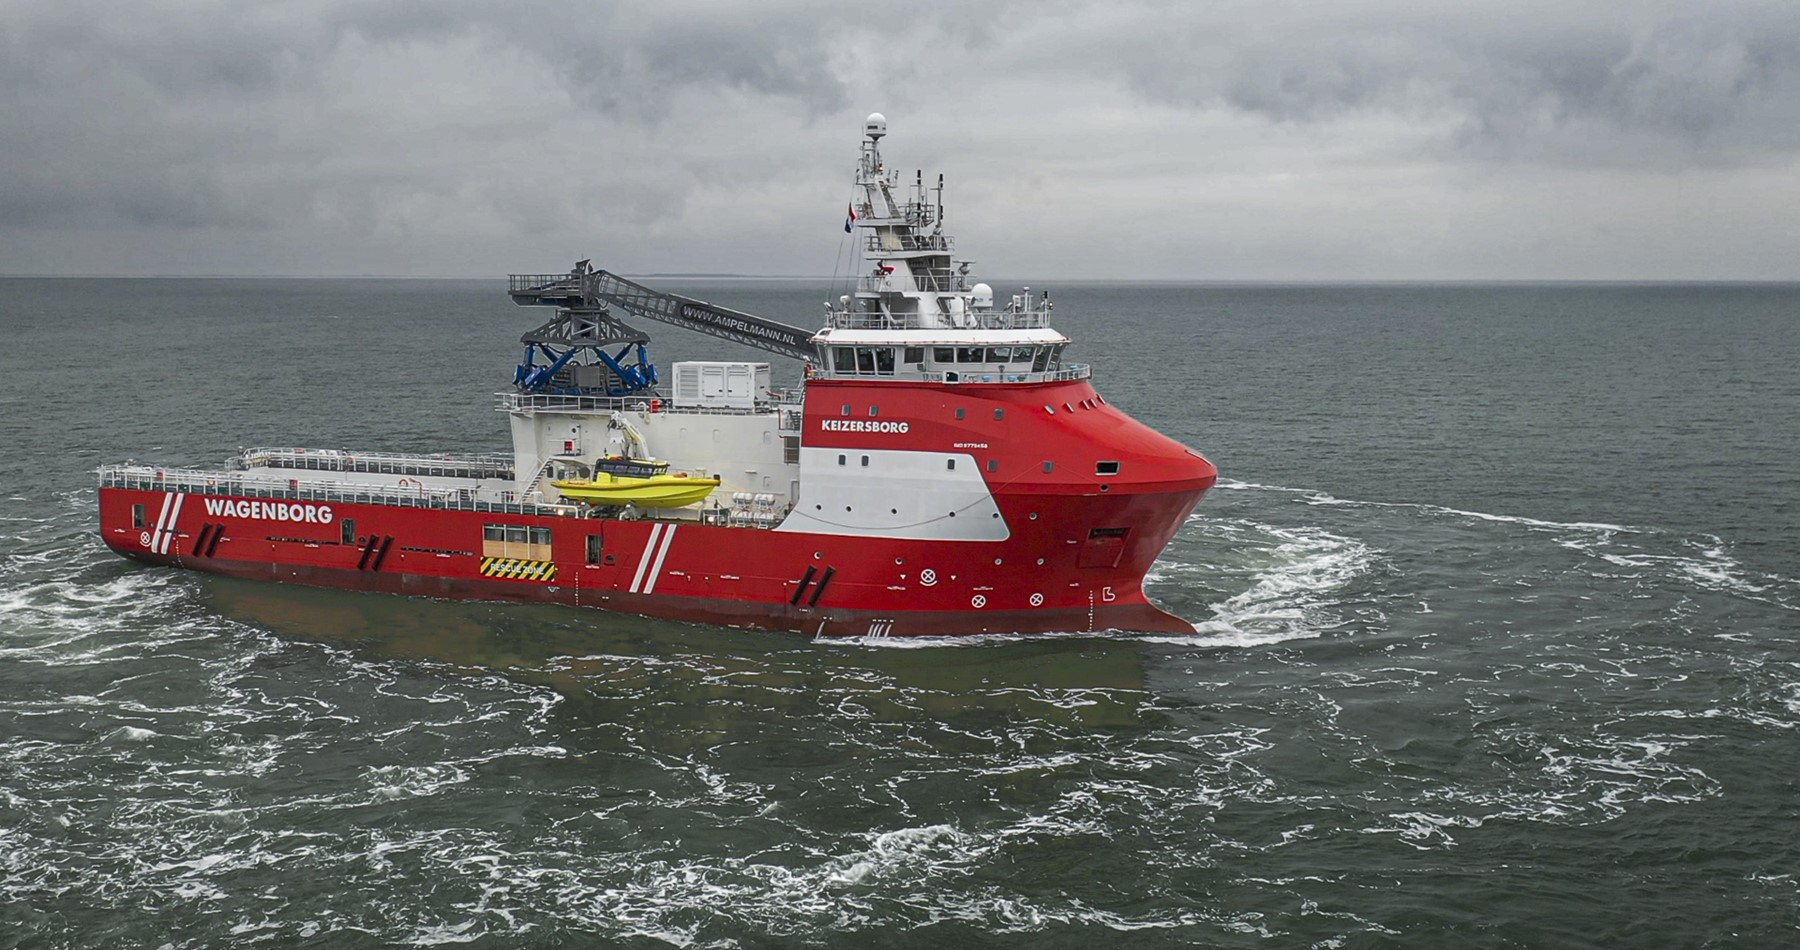 Third 'walk-to-work' vessel into service as 'Keizersborg'